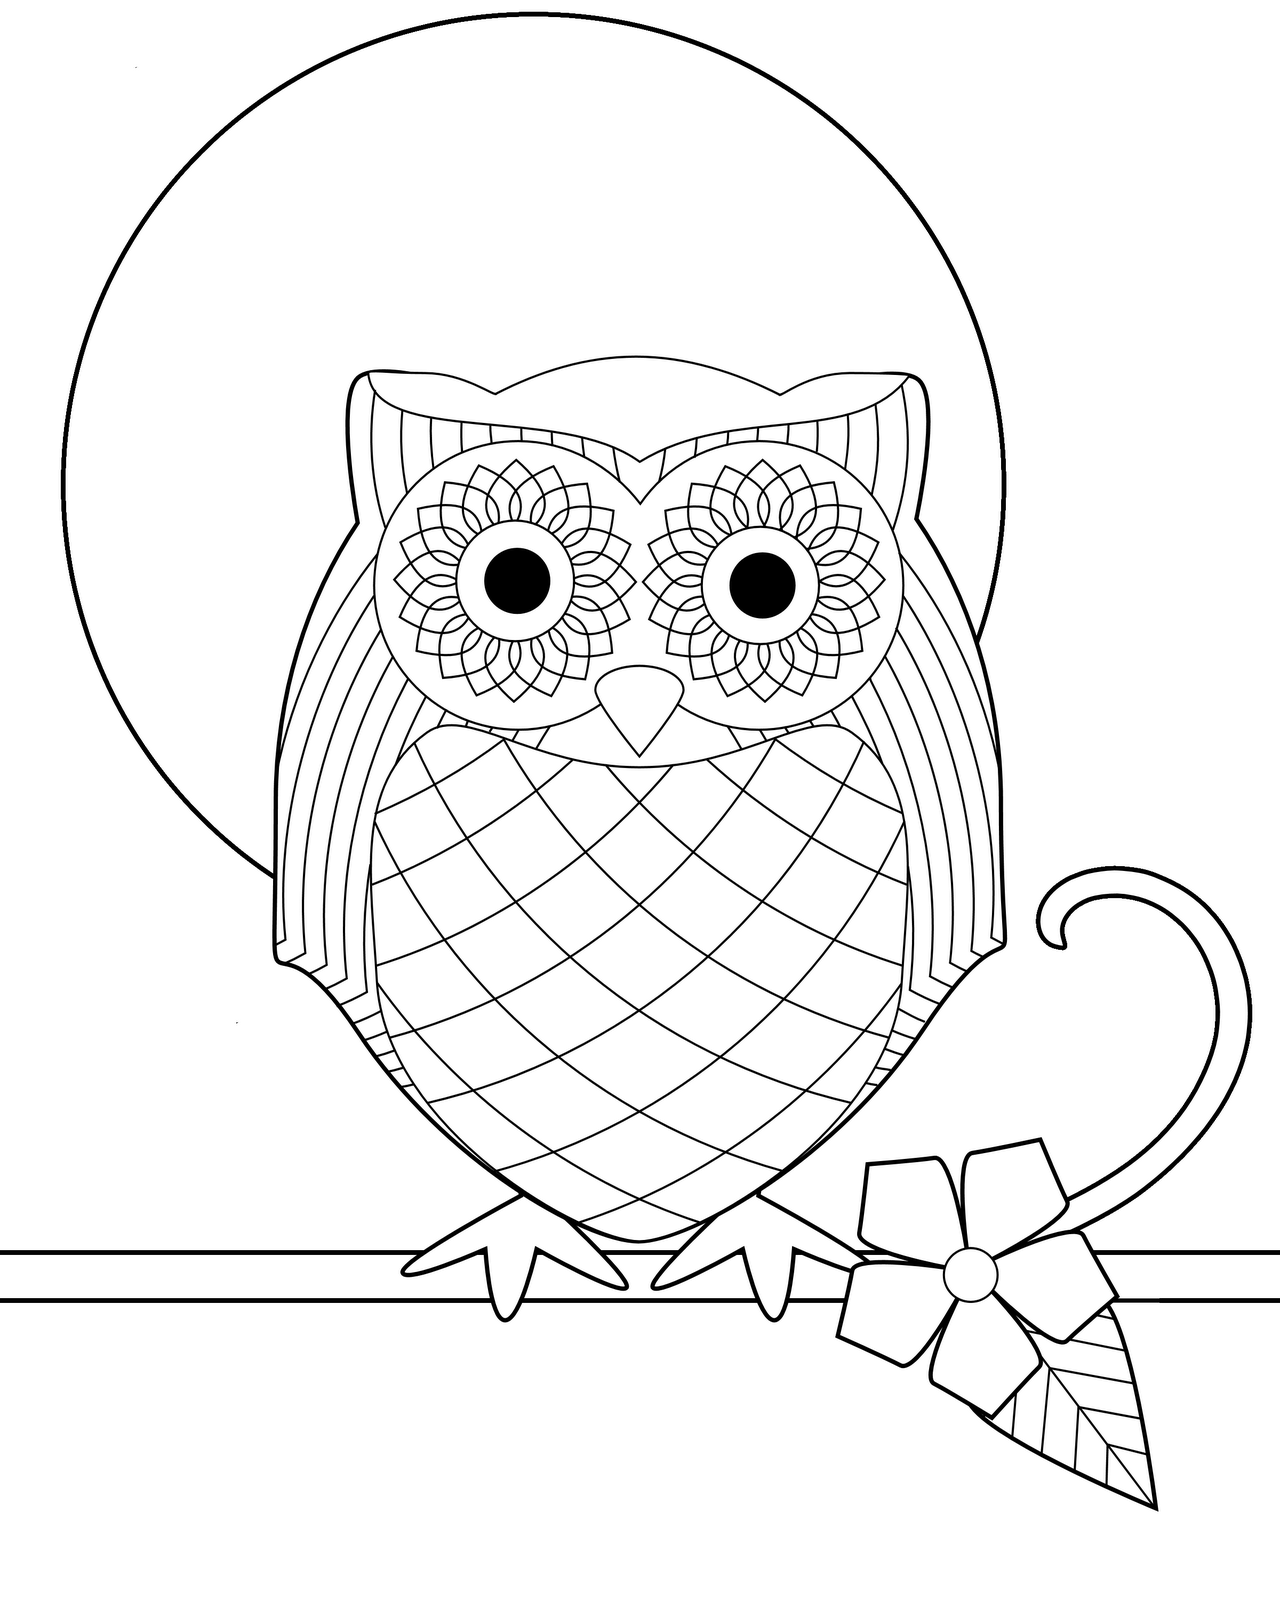 baby owl coloring pages - Coloringbook Pages